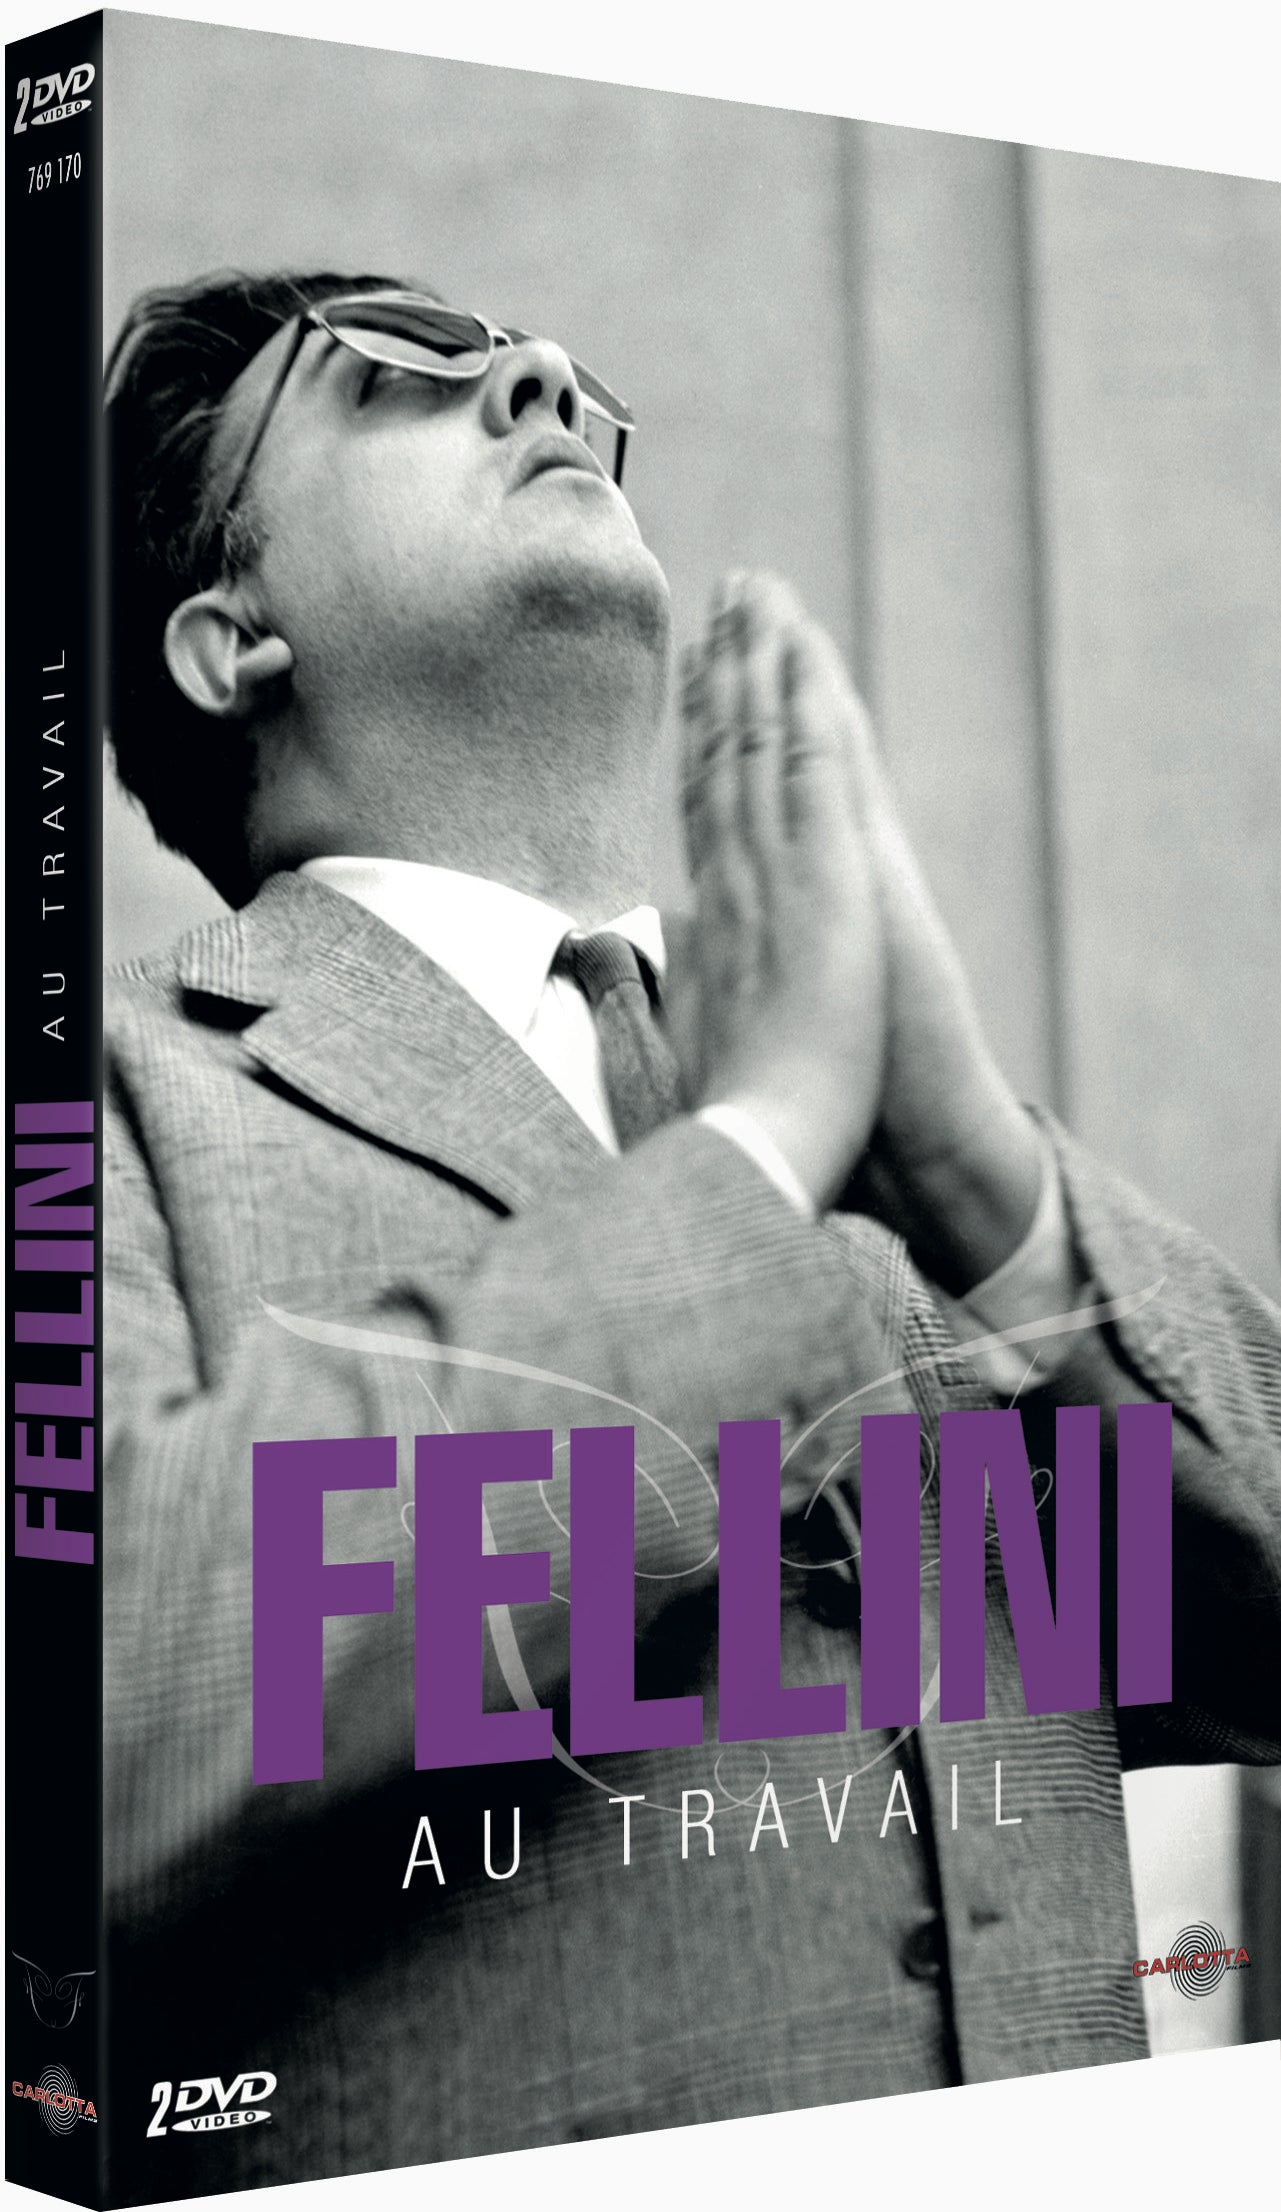 Fellini au travail - DVD - CARLOTTA FILMS - La Boutique